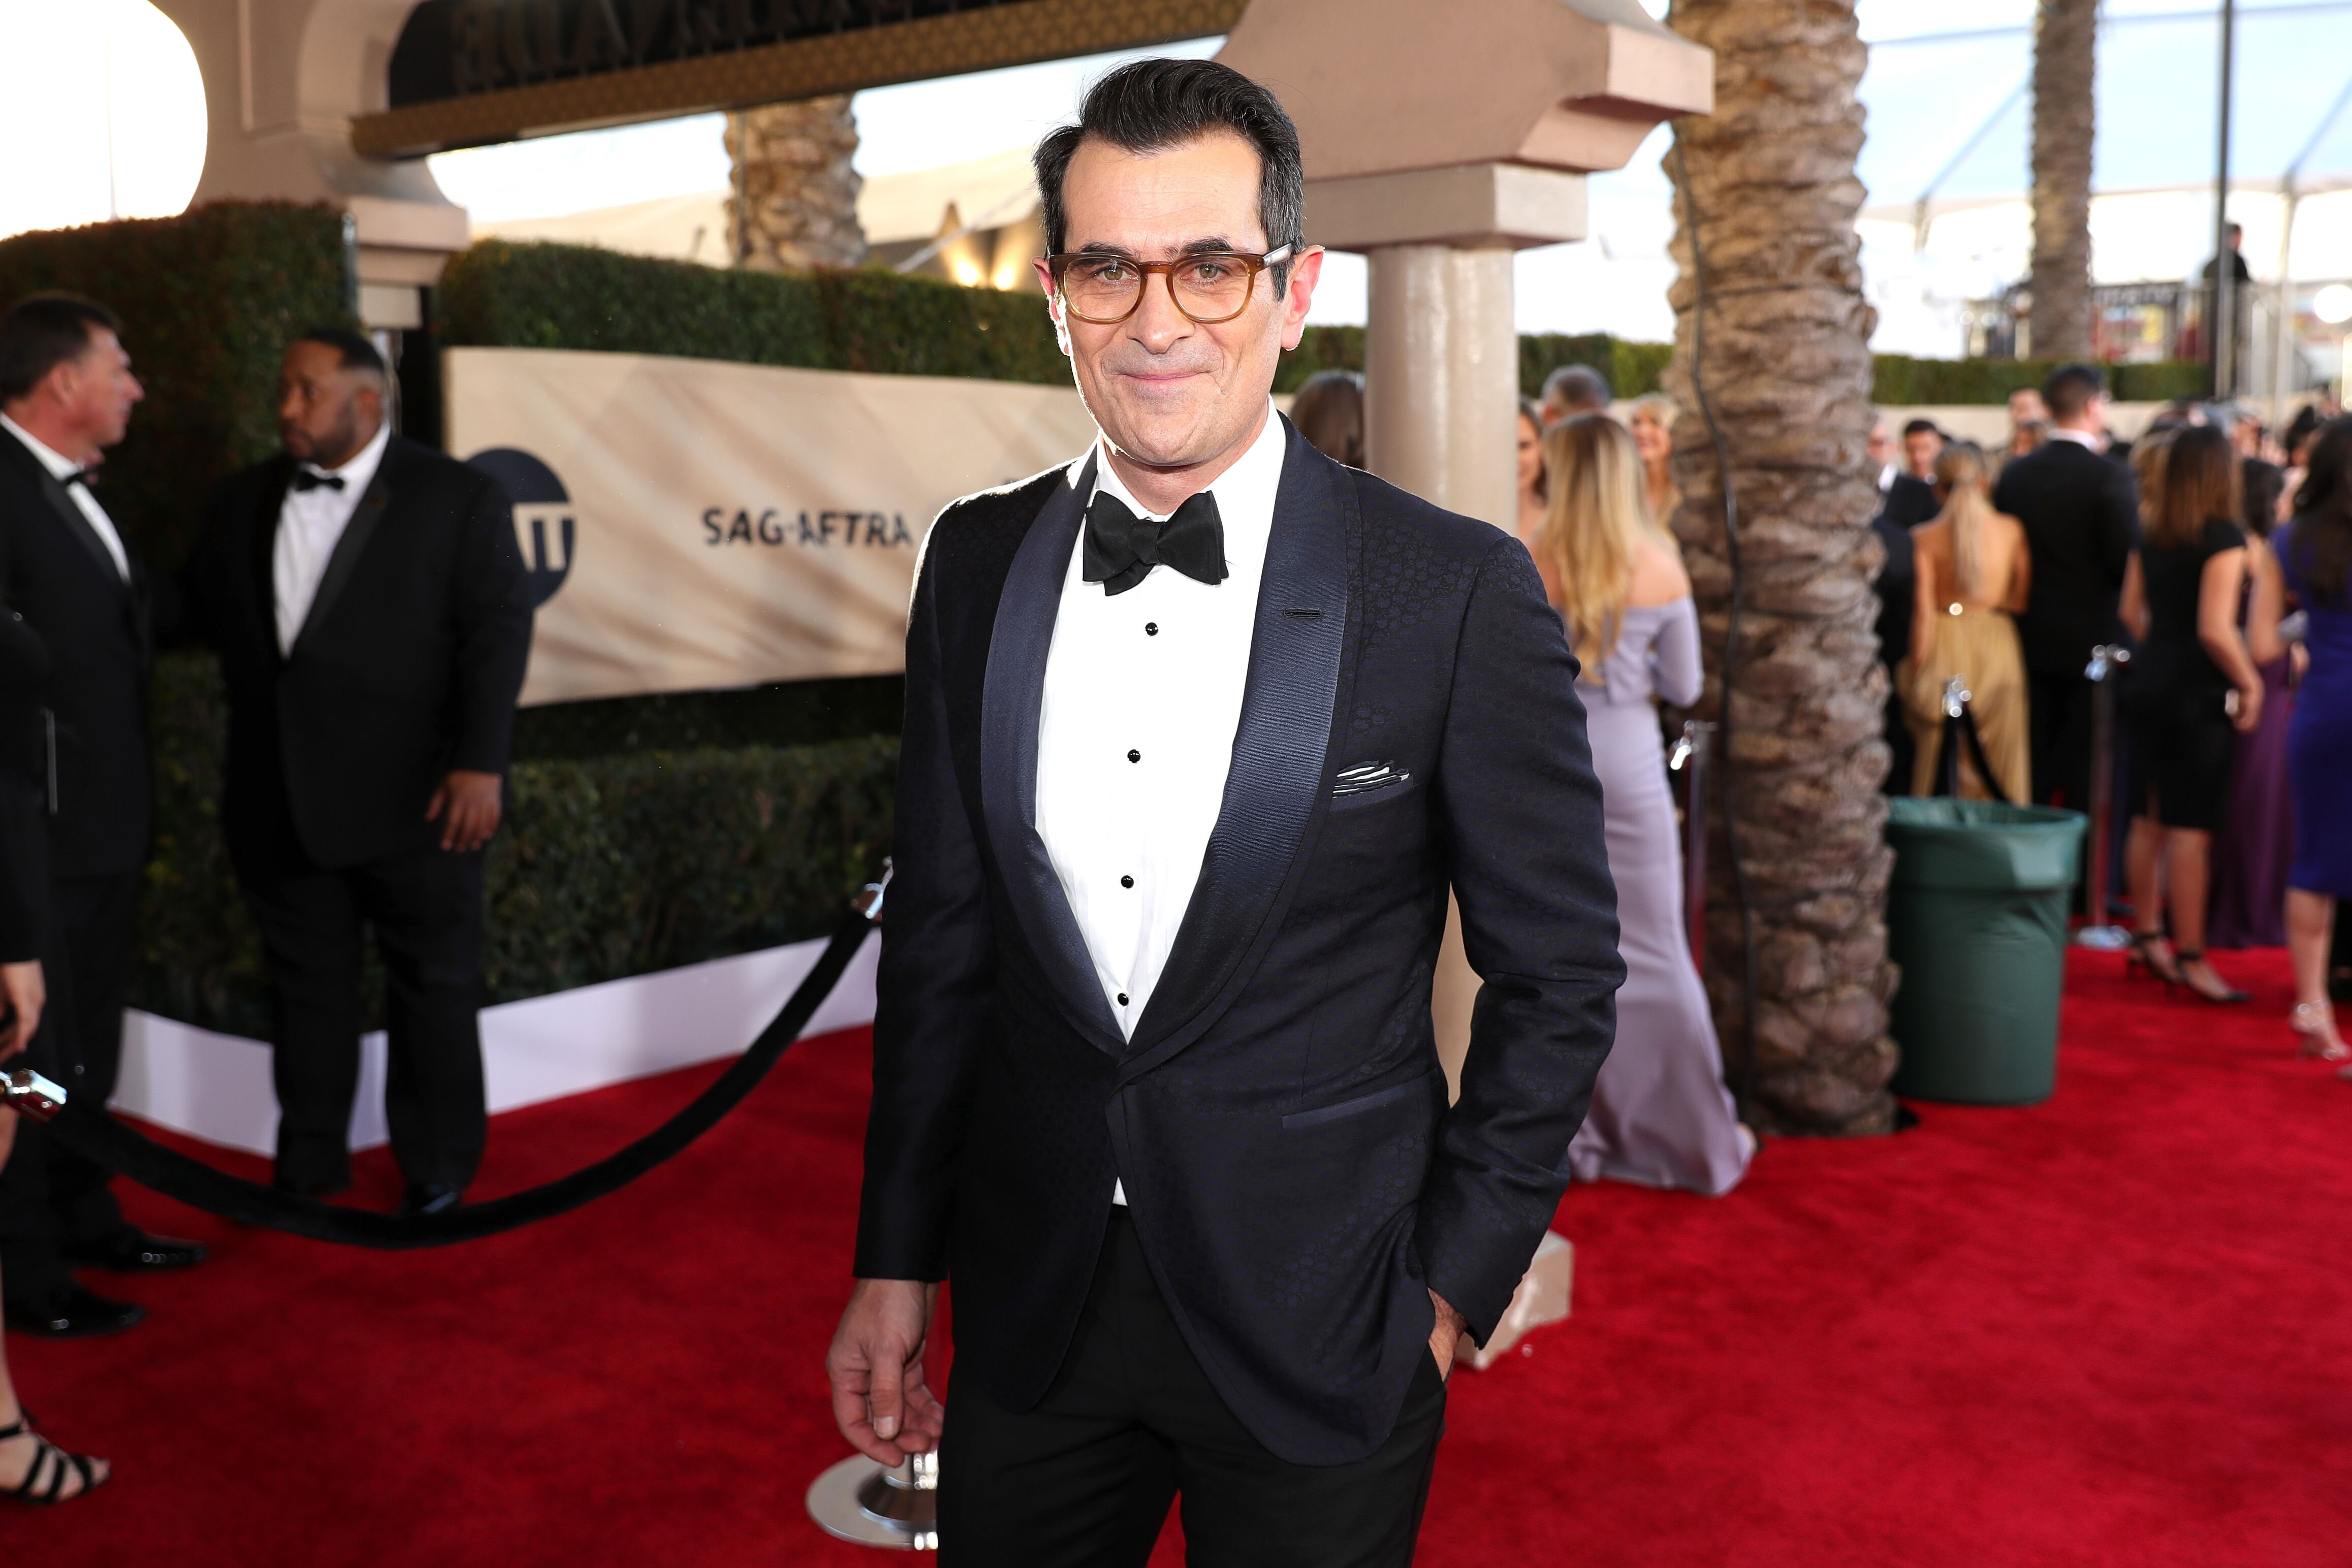 Ty Burrell at the 23rd Annual Screen Actors Guild Awards in 2017 in Los Angeles   Source: Getty Images